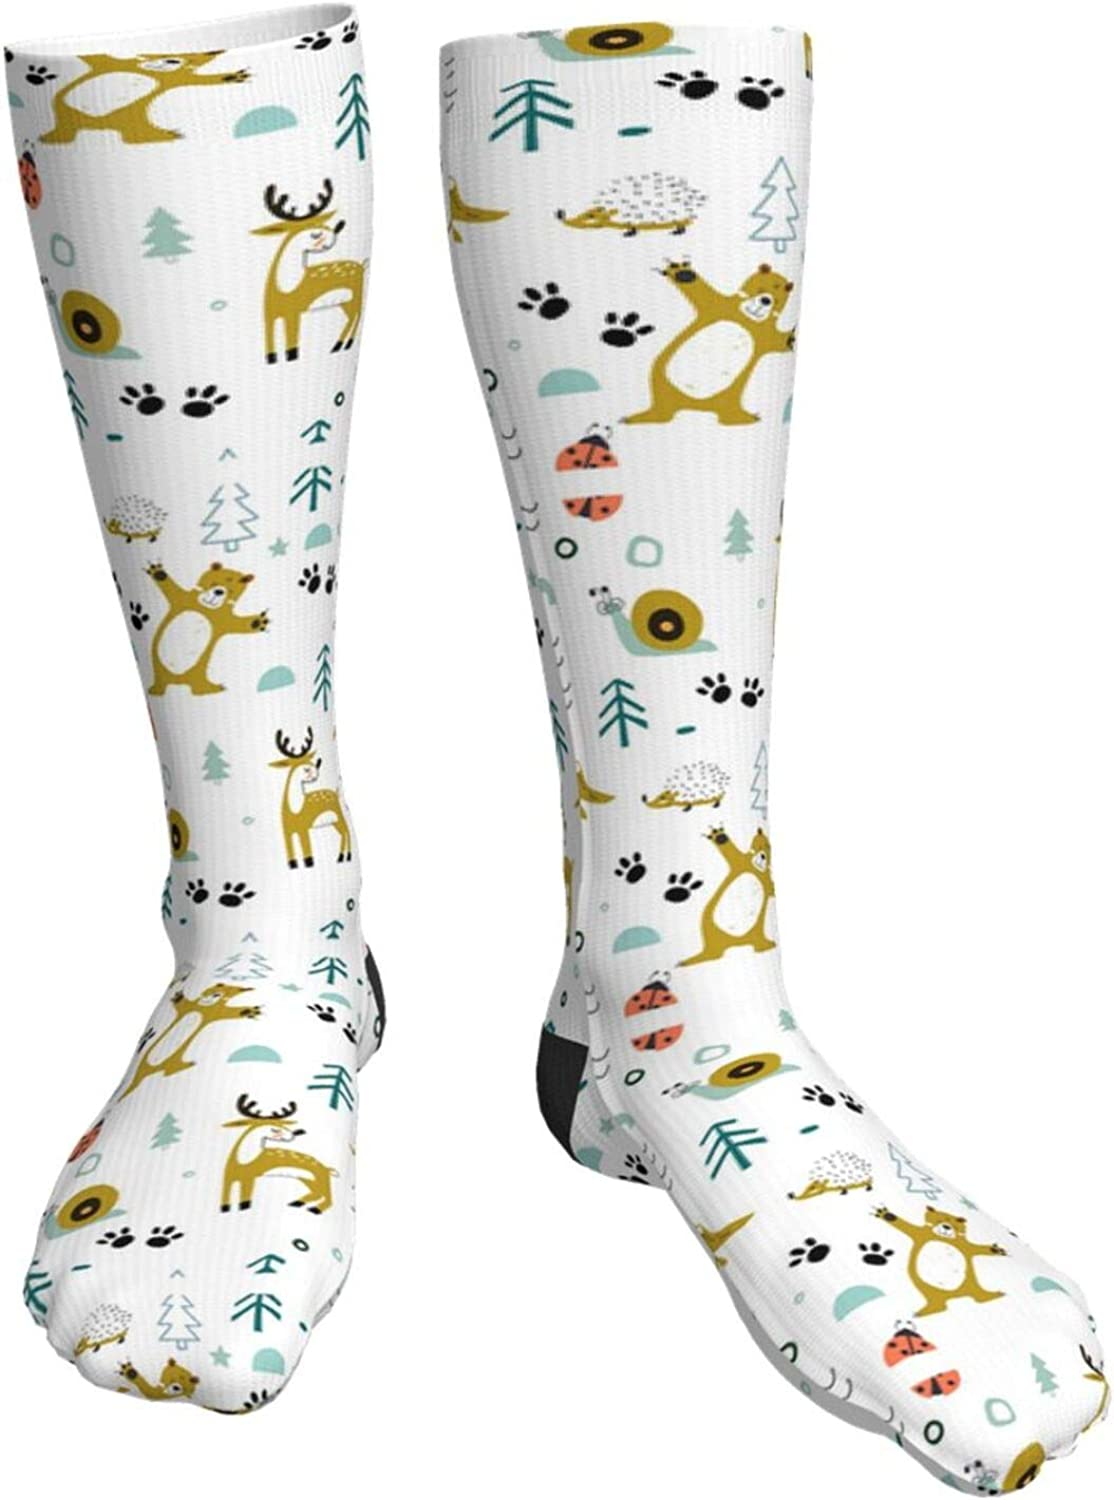 Fashion Snowman Unisex Casual Crew Girl'S Import Boy'S Socks Long Limited time sale